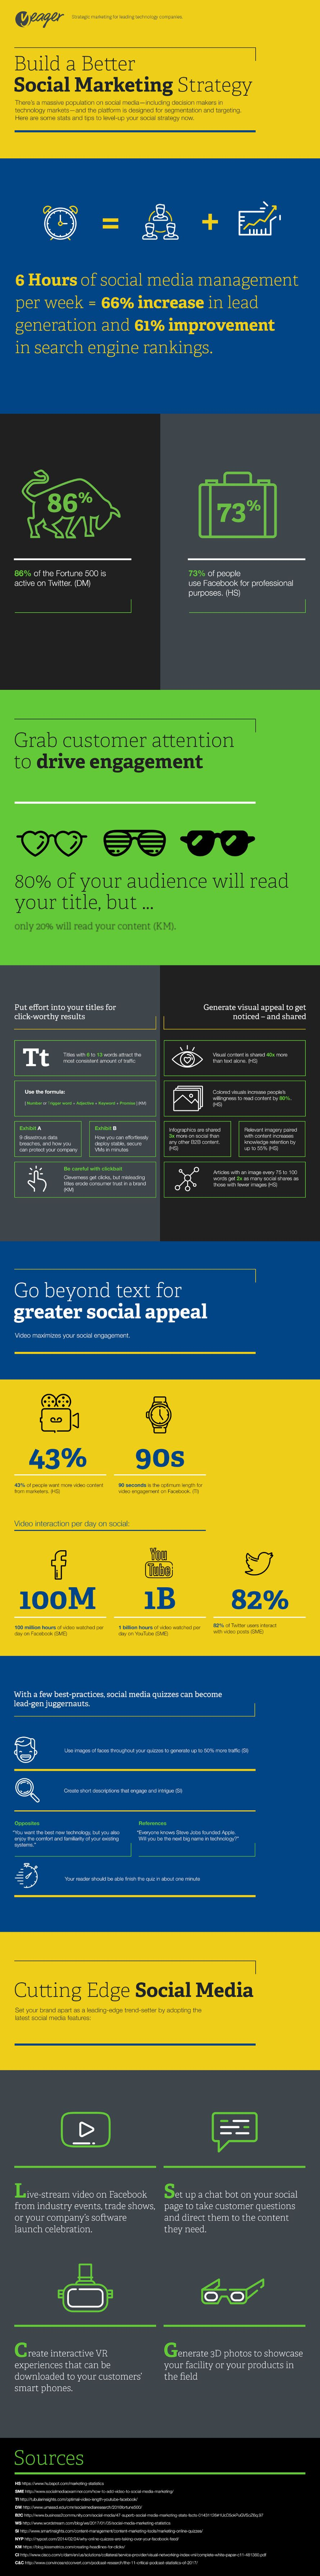 How to Build a Better Social Media Marketing Strategy - infographic